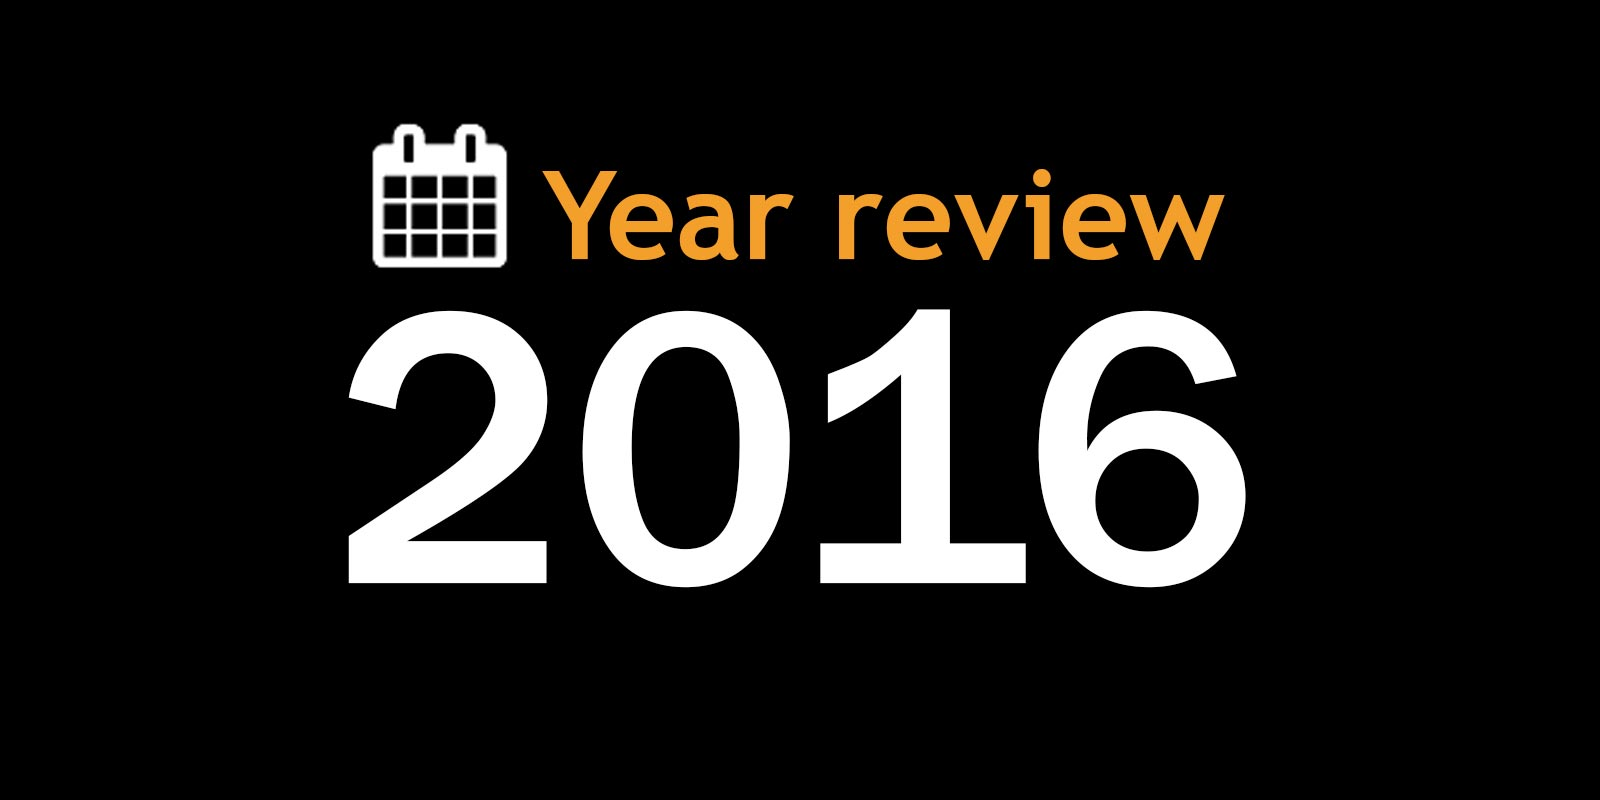 Year review 2016